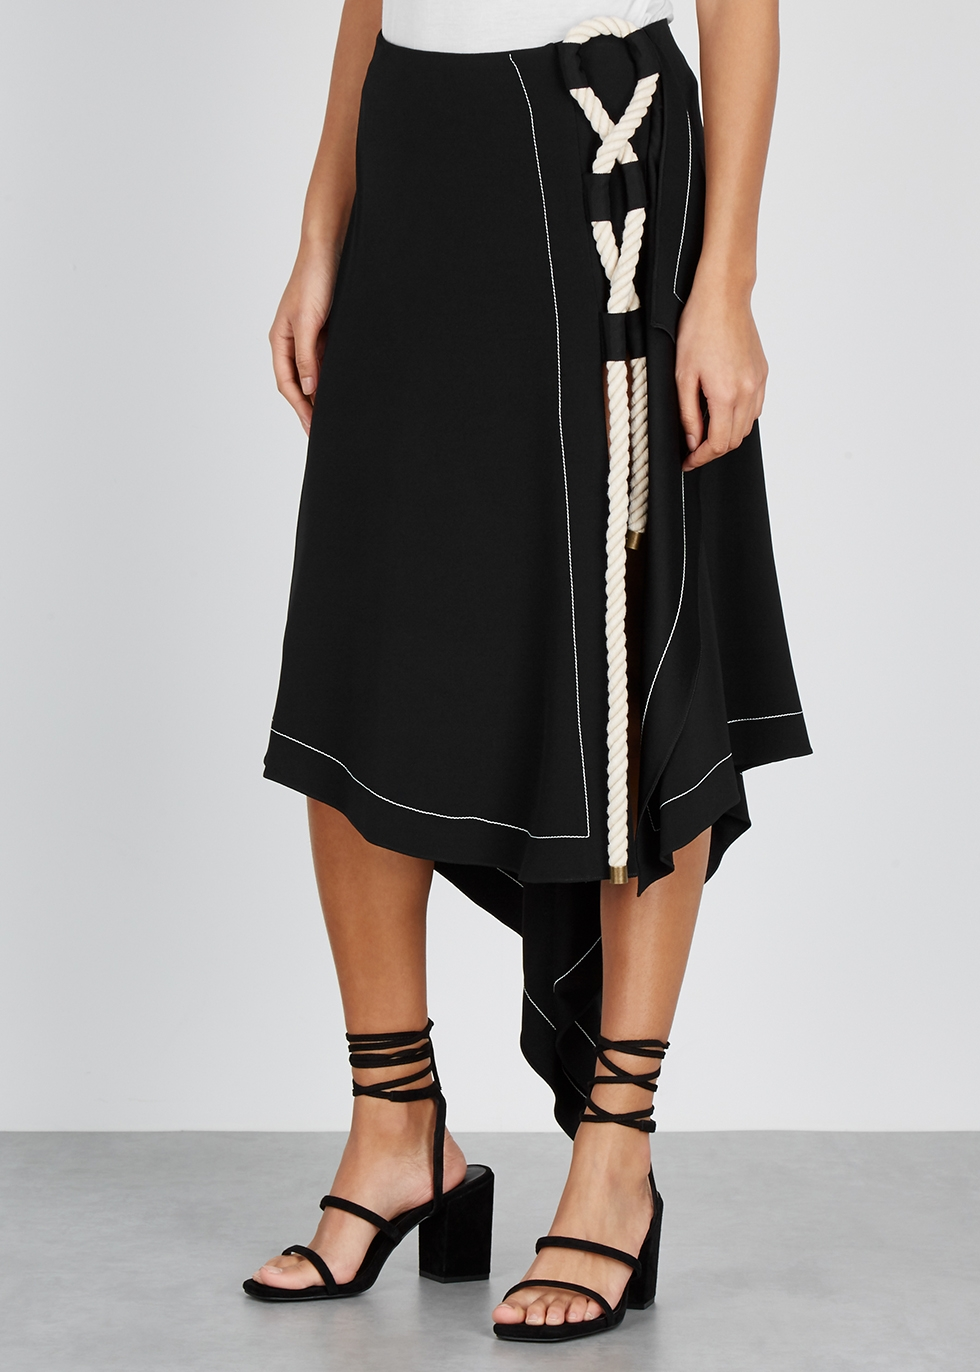 Black rope-embellished asymmetric skirt - MONSE